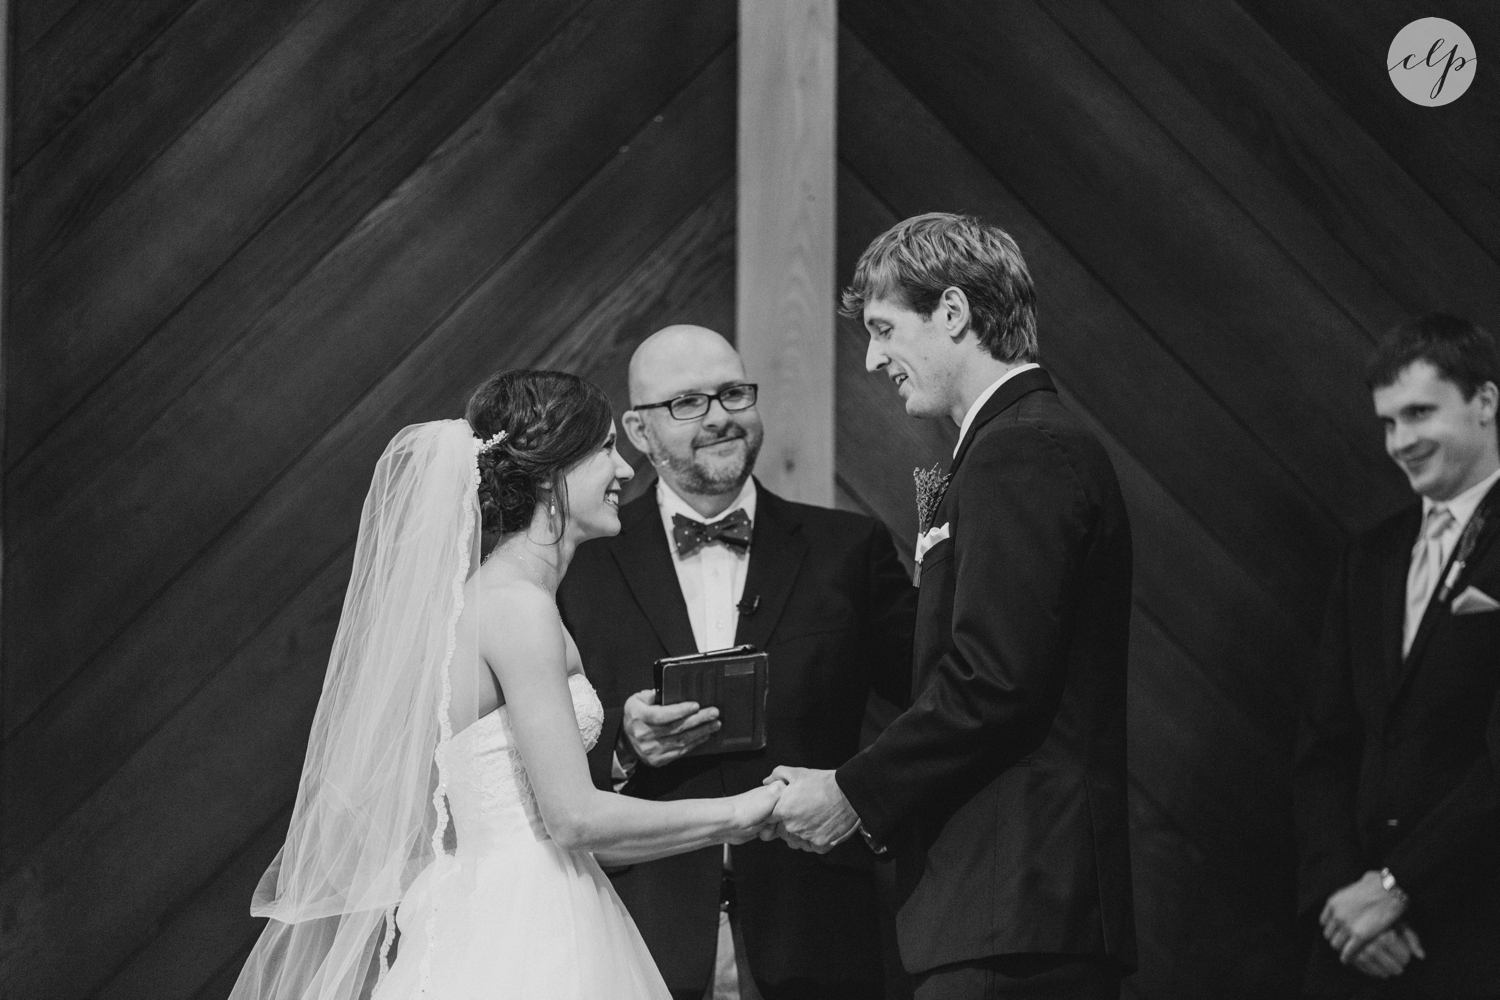 st-louis-missouri-wedding-photographer_5815.jpg